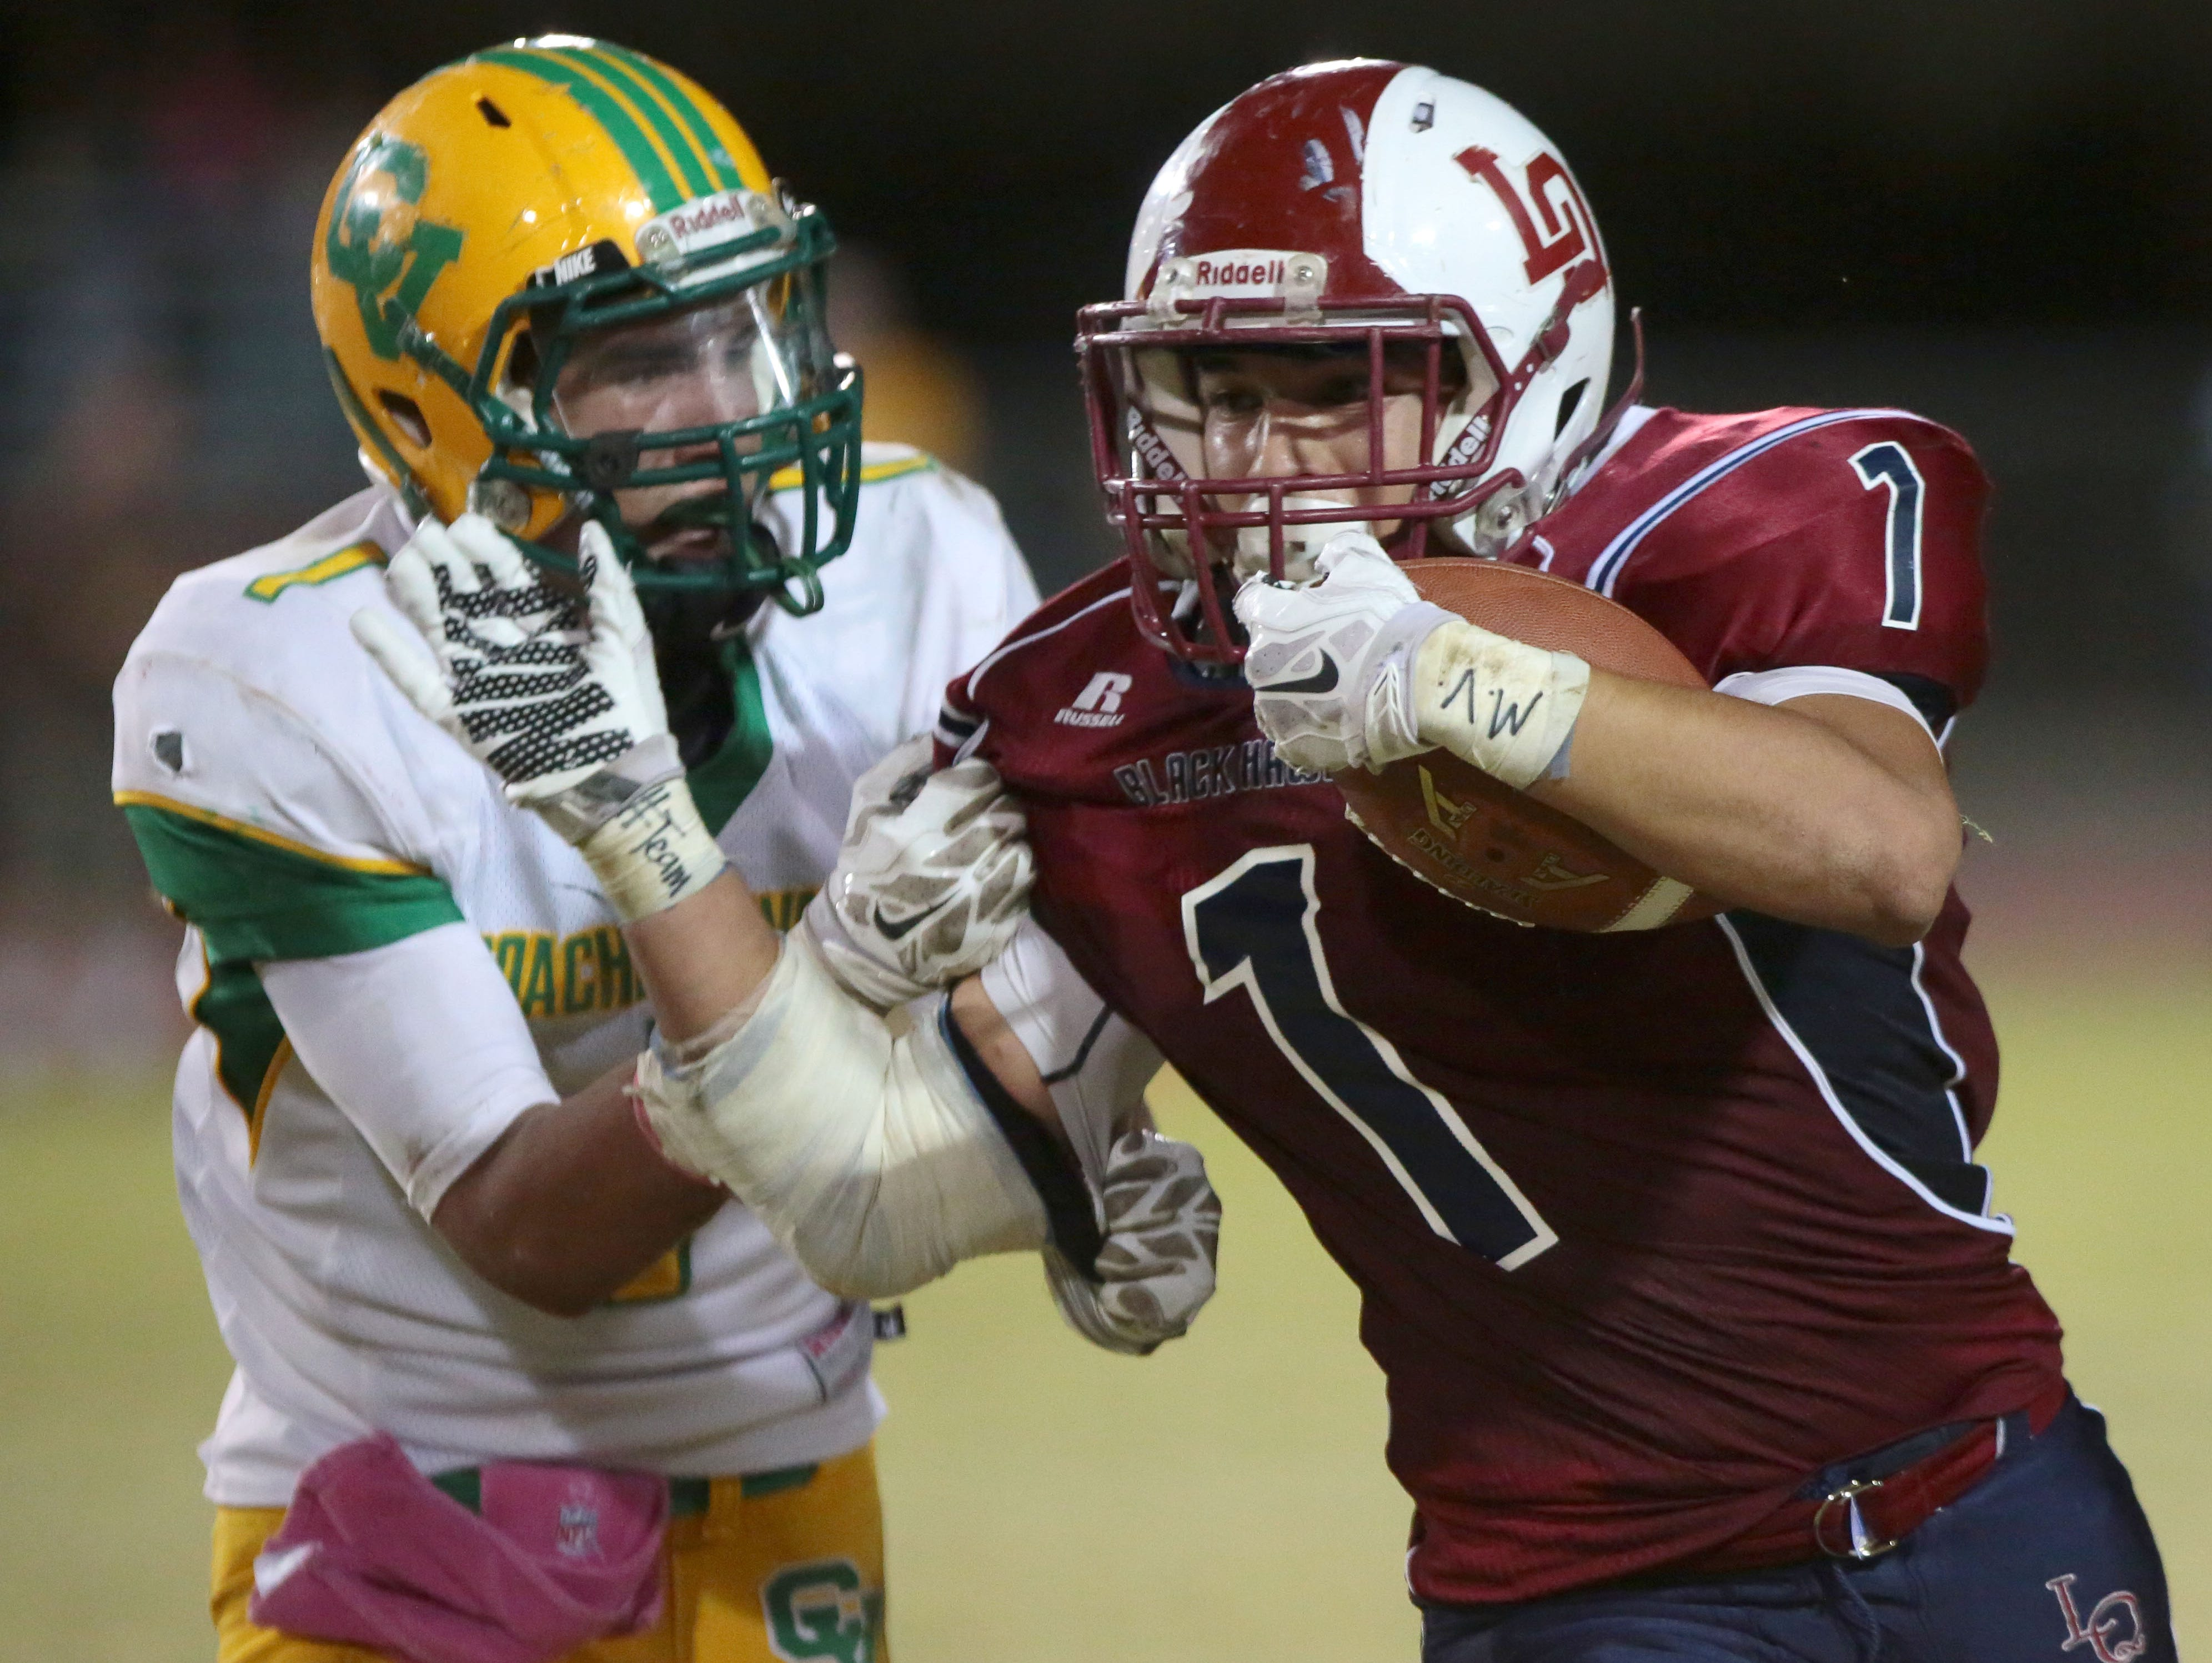 La Quinta's Benji Cordova carries the ball for a first down against Coachella Valley on Friday in La Quinta